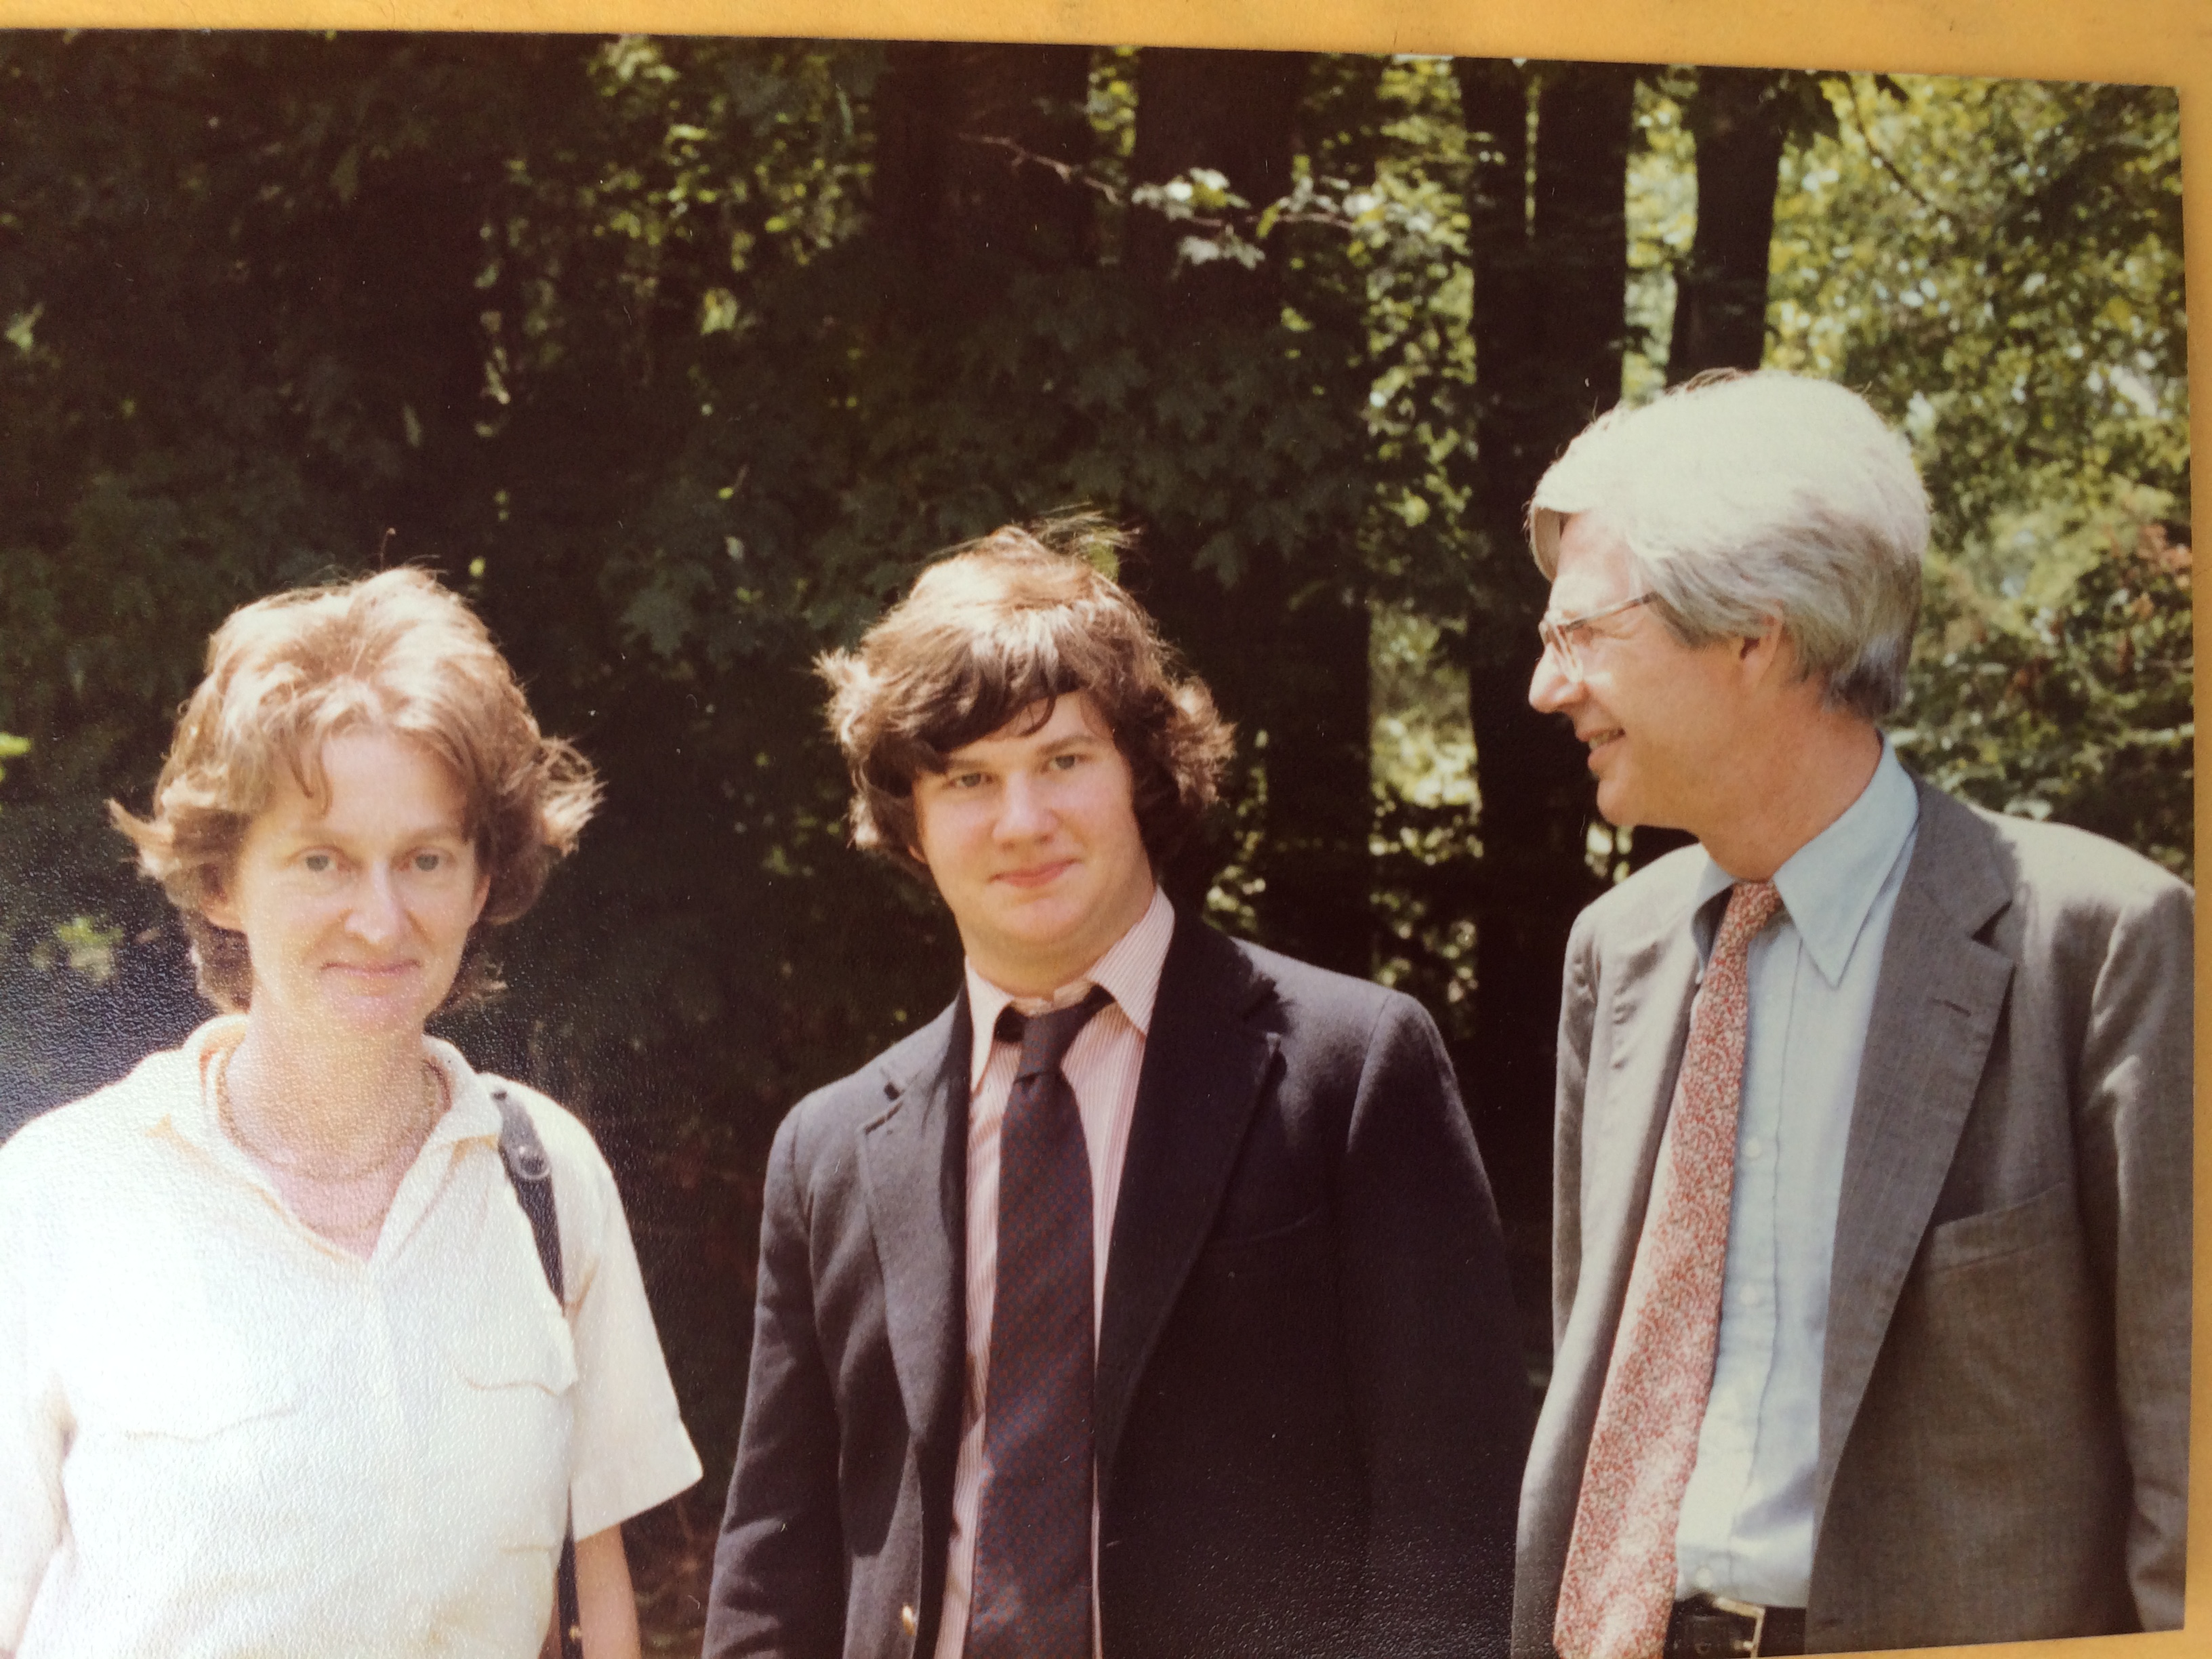 Justin at high school graduation with his parents in 1981